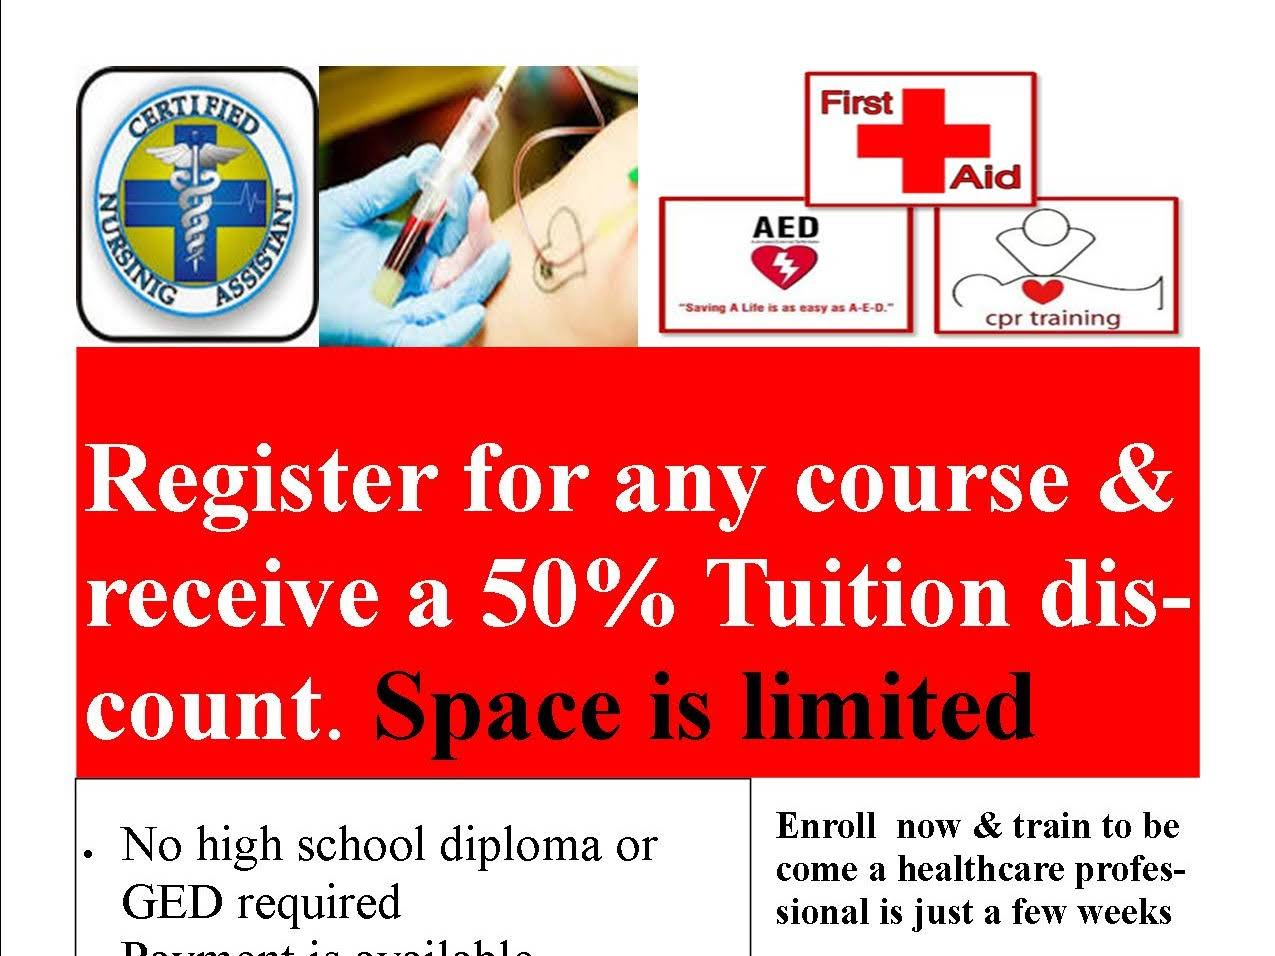 Cna pct phlebotomy cpr bah career training center is located in updates 1betcityfo Image collections